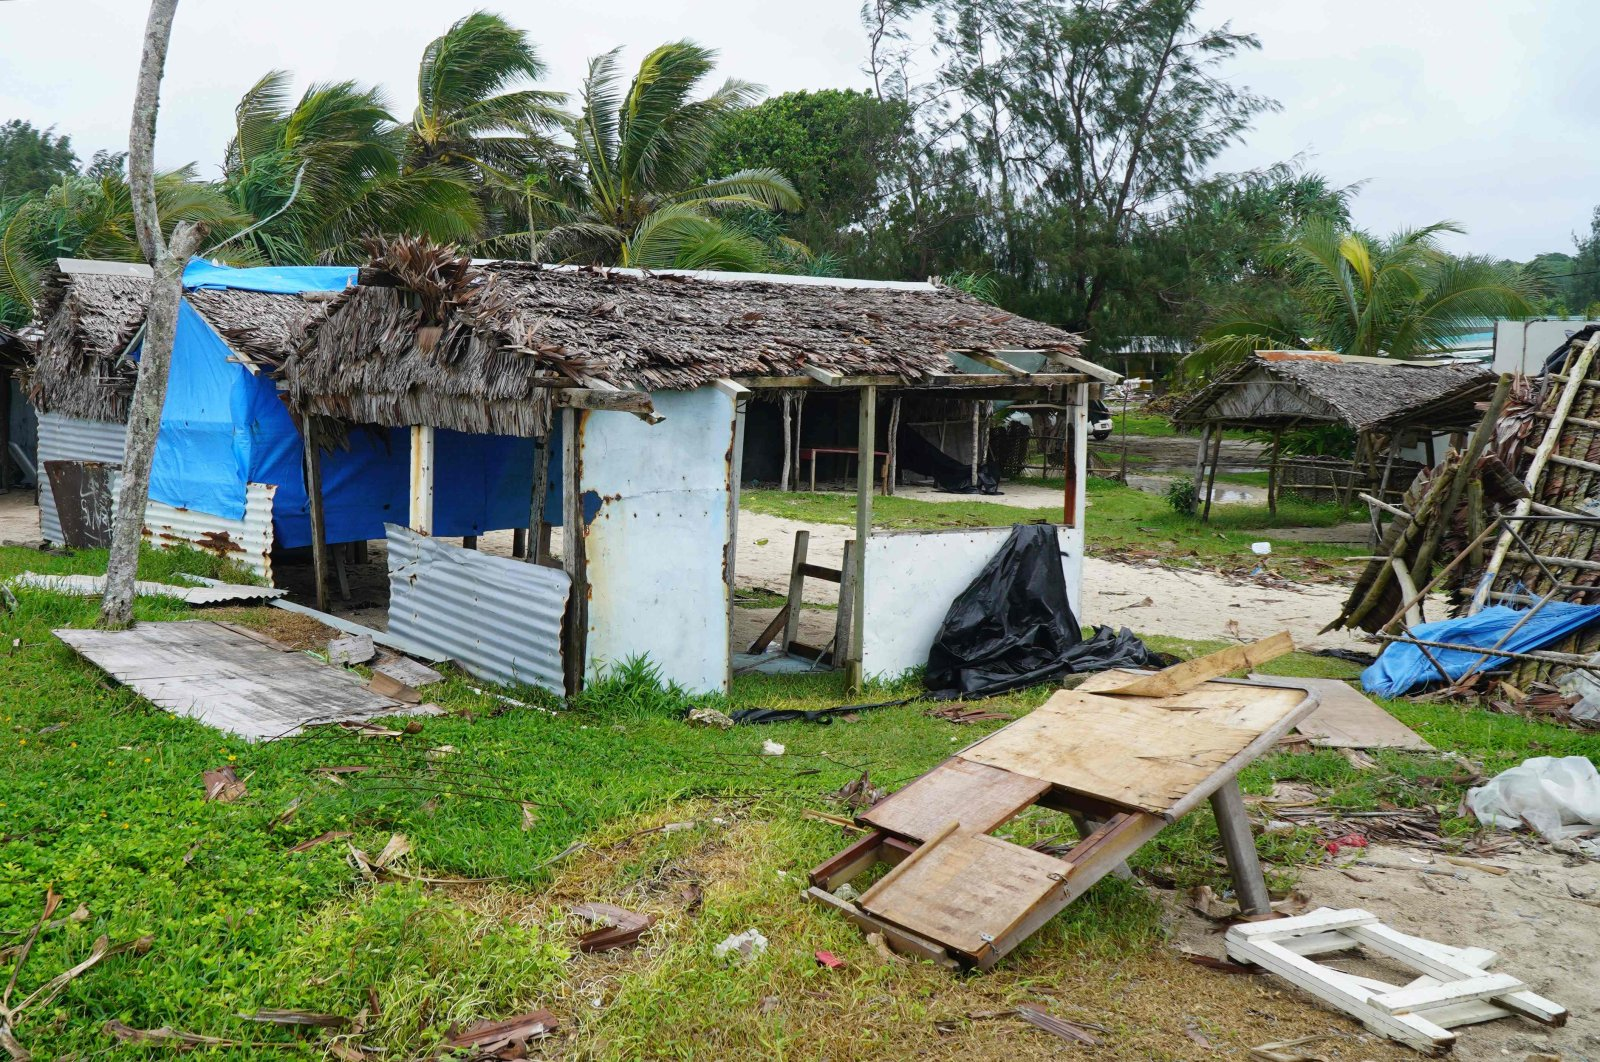 Badly damaged buildings are pictured near Vanuatu's capital of Port Vila, Tuesday, April 7, 2020. (AFP Photo)